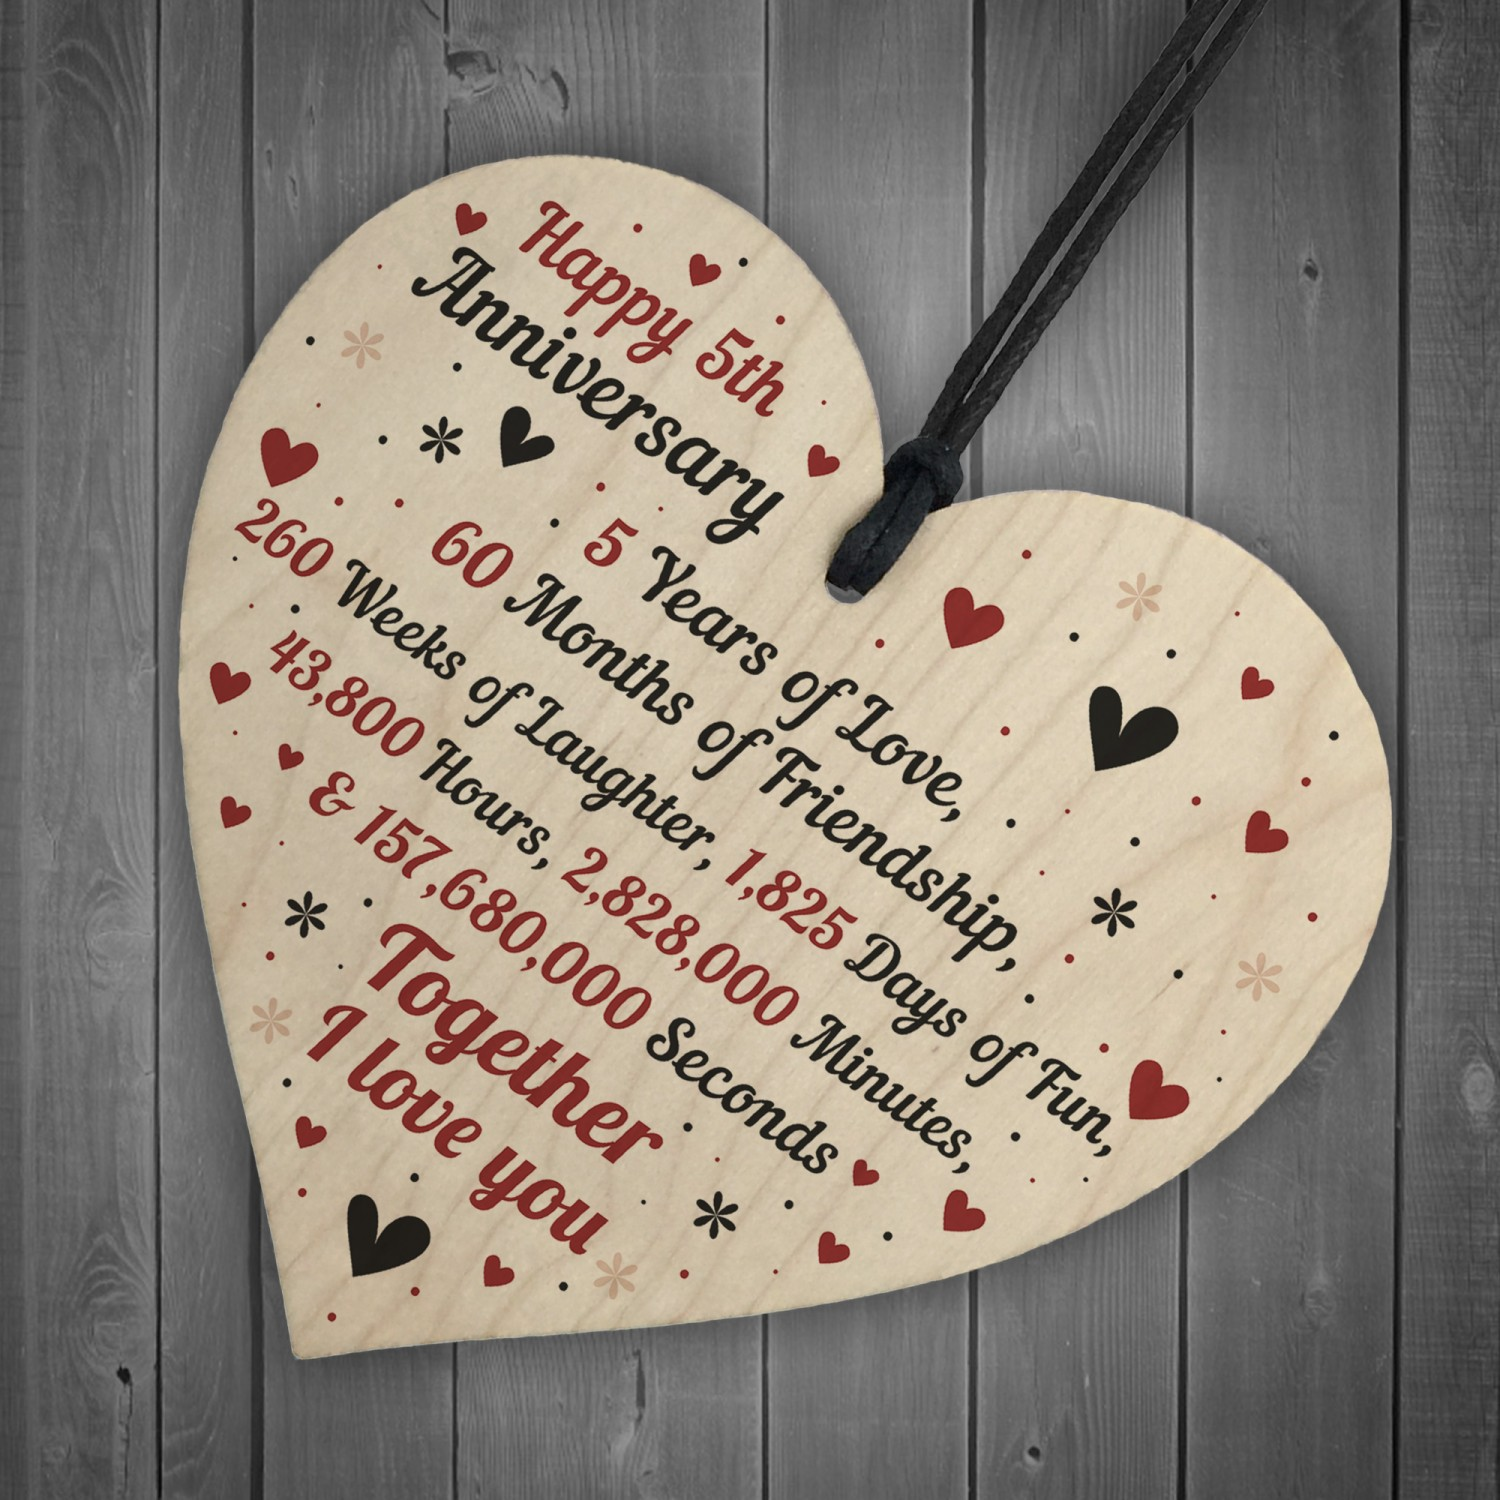 Wedding Anniversary Gifts For Her: 5th Wedding Anniversary Gift For Him Her Wood Heart Keepsake